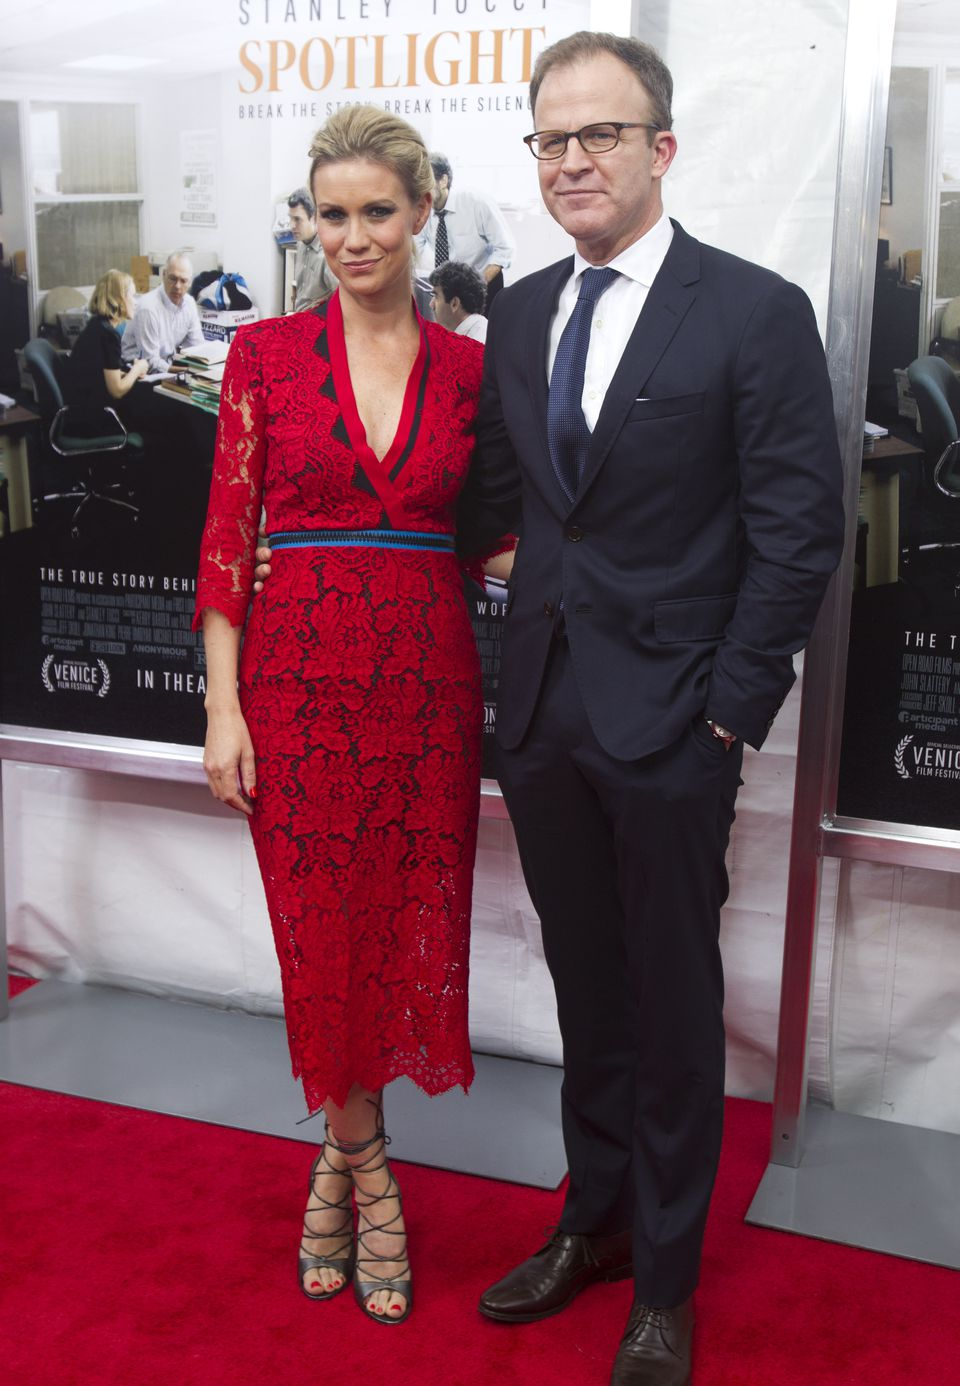 Director and cowriter Tom McCarthy (right) with his wife, Wendy Merry McCarthy.